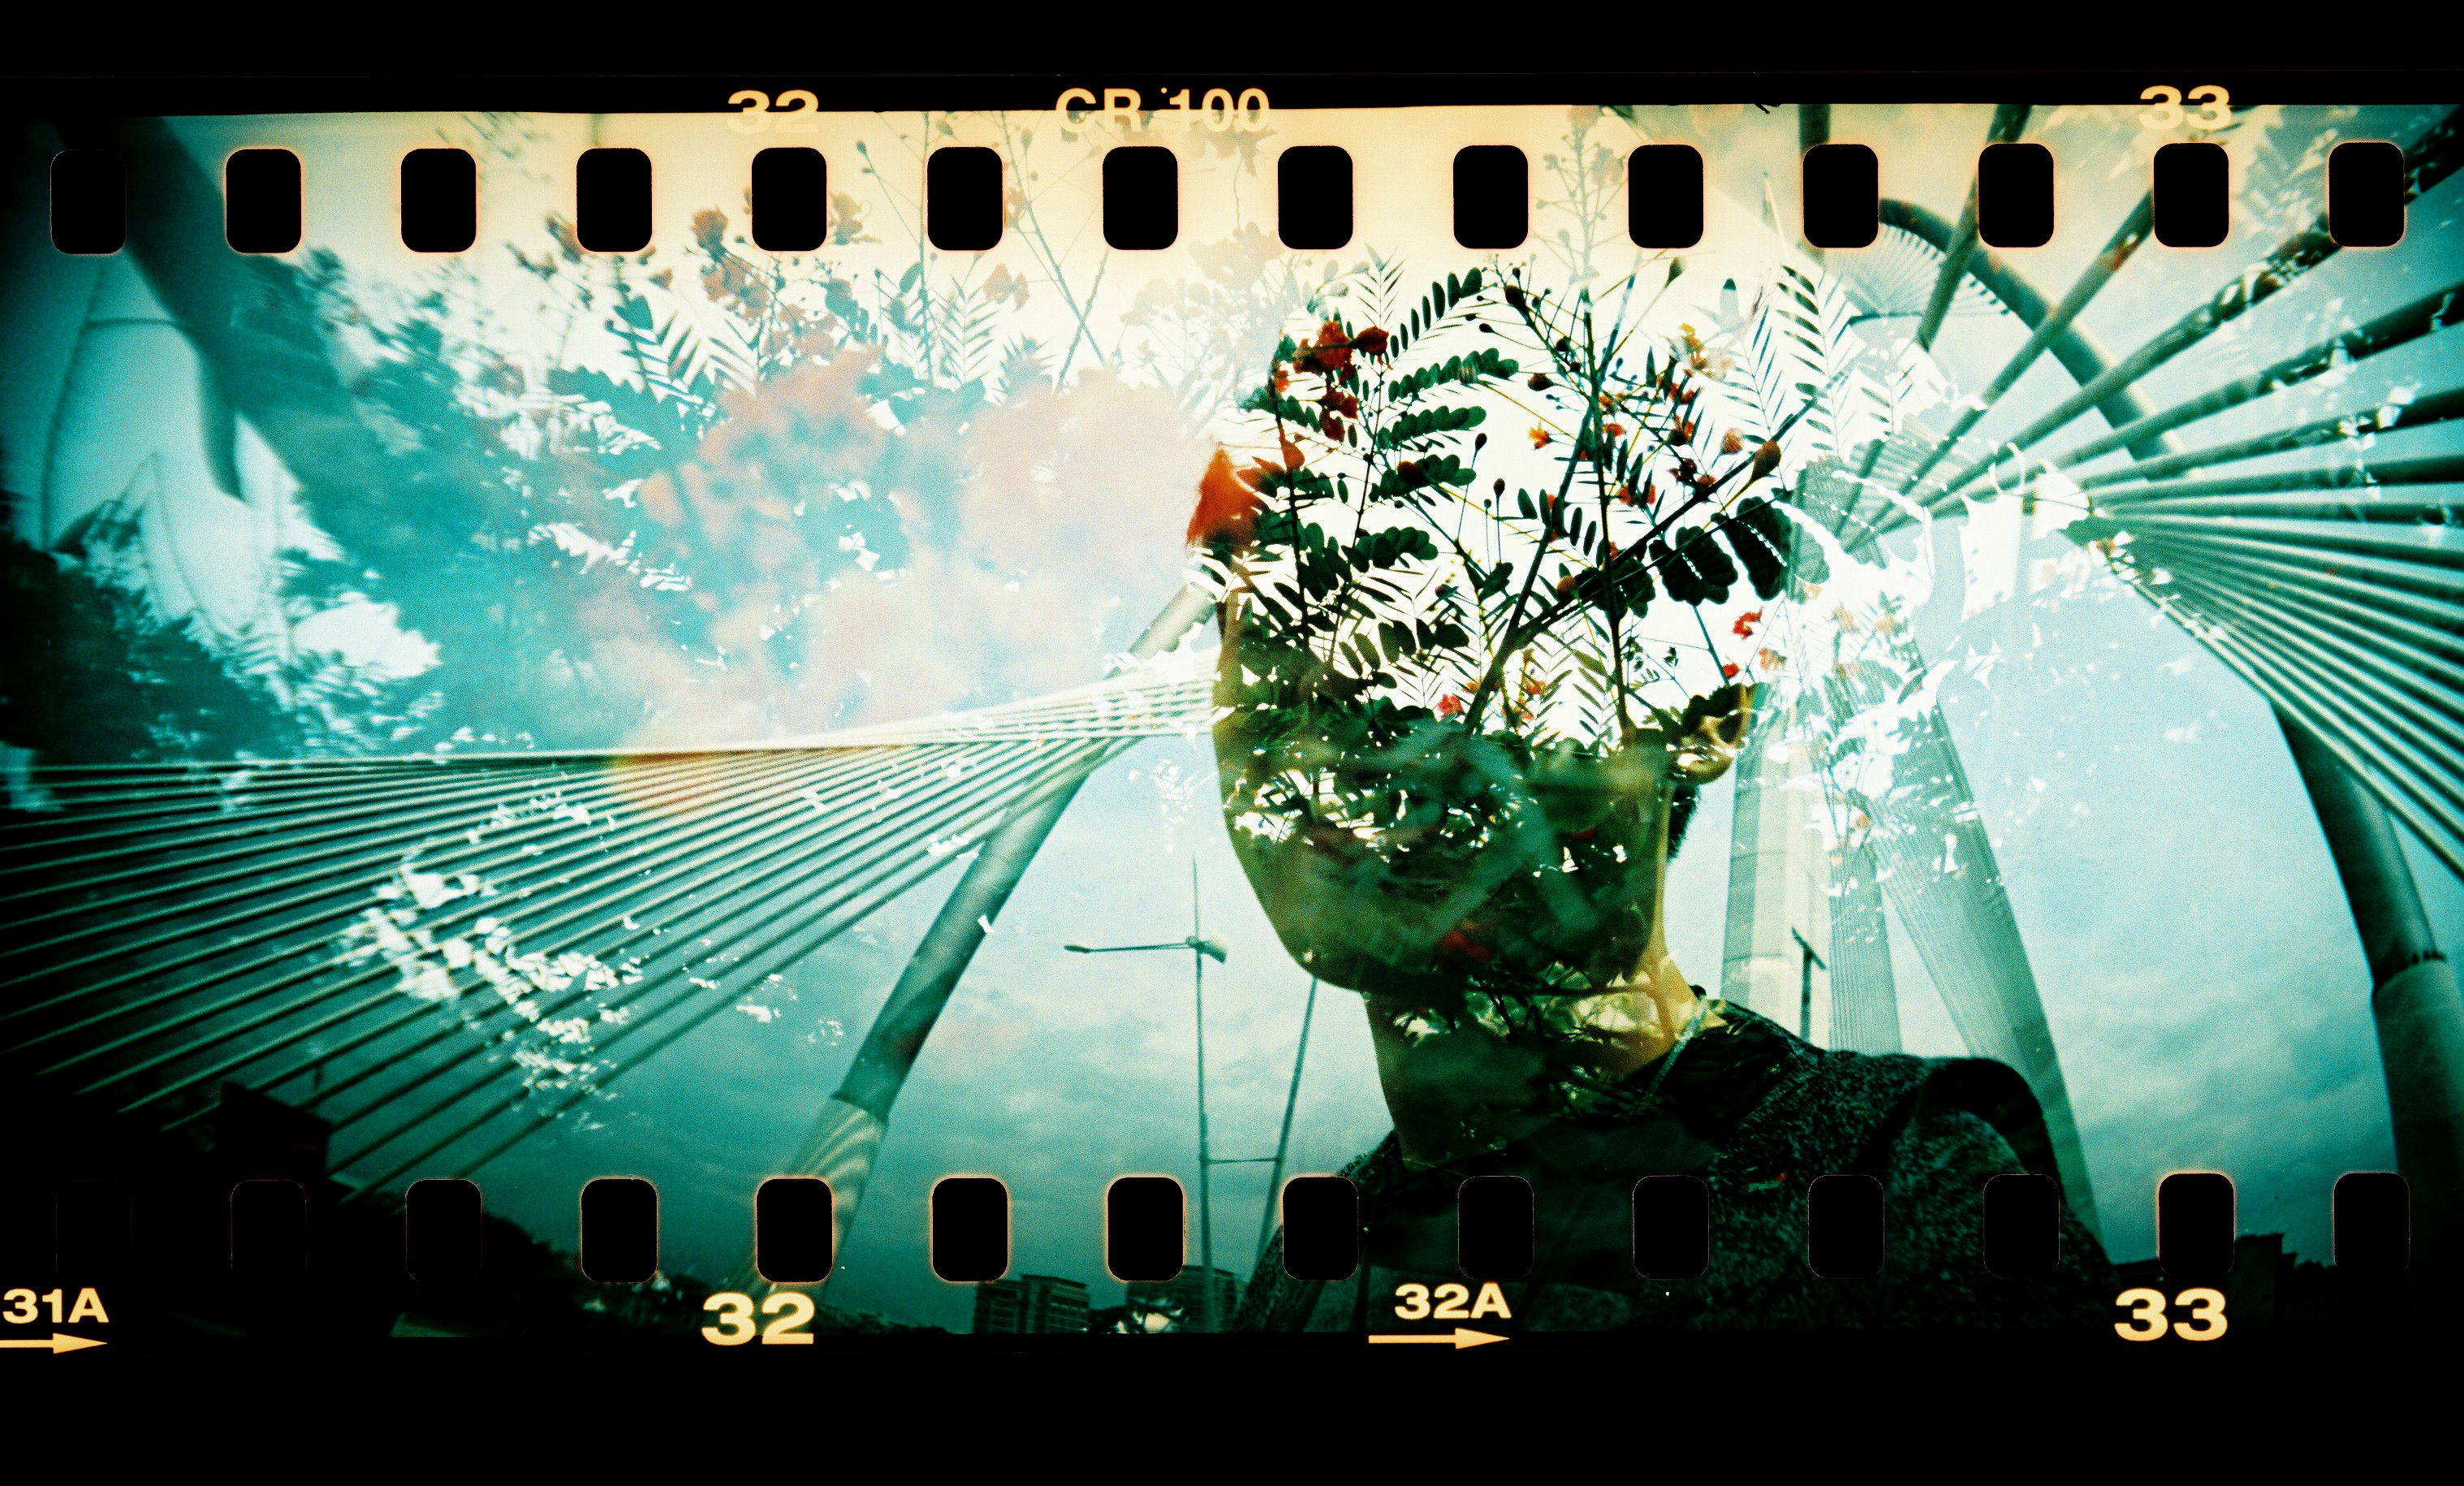 Sprocket Rocket Camera : Sprocket rocket camera lomogaphy lomography film